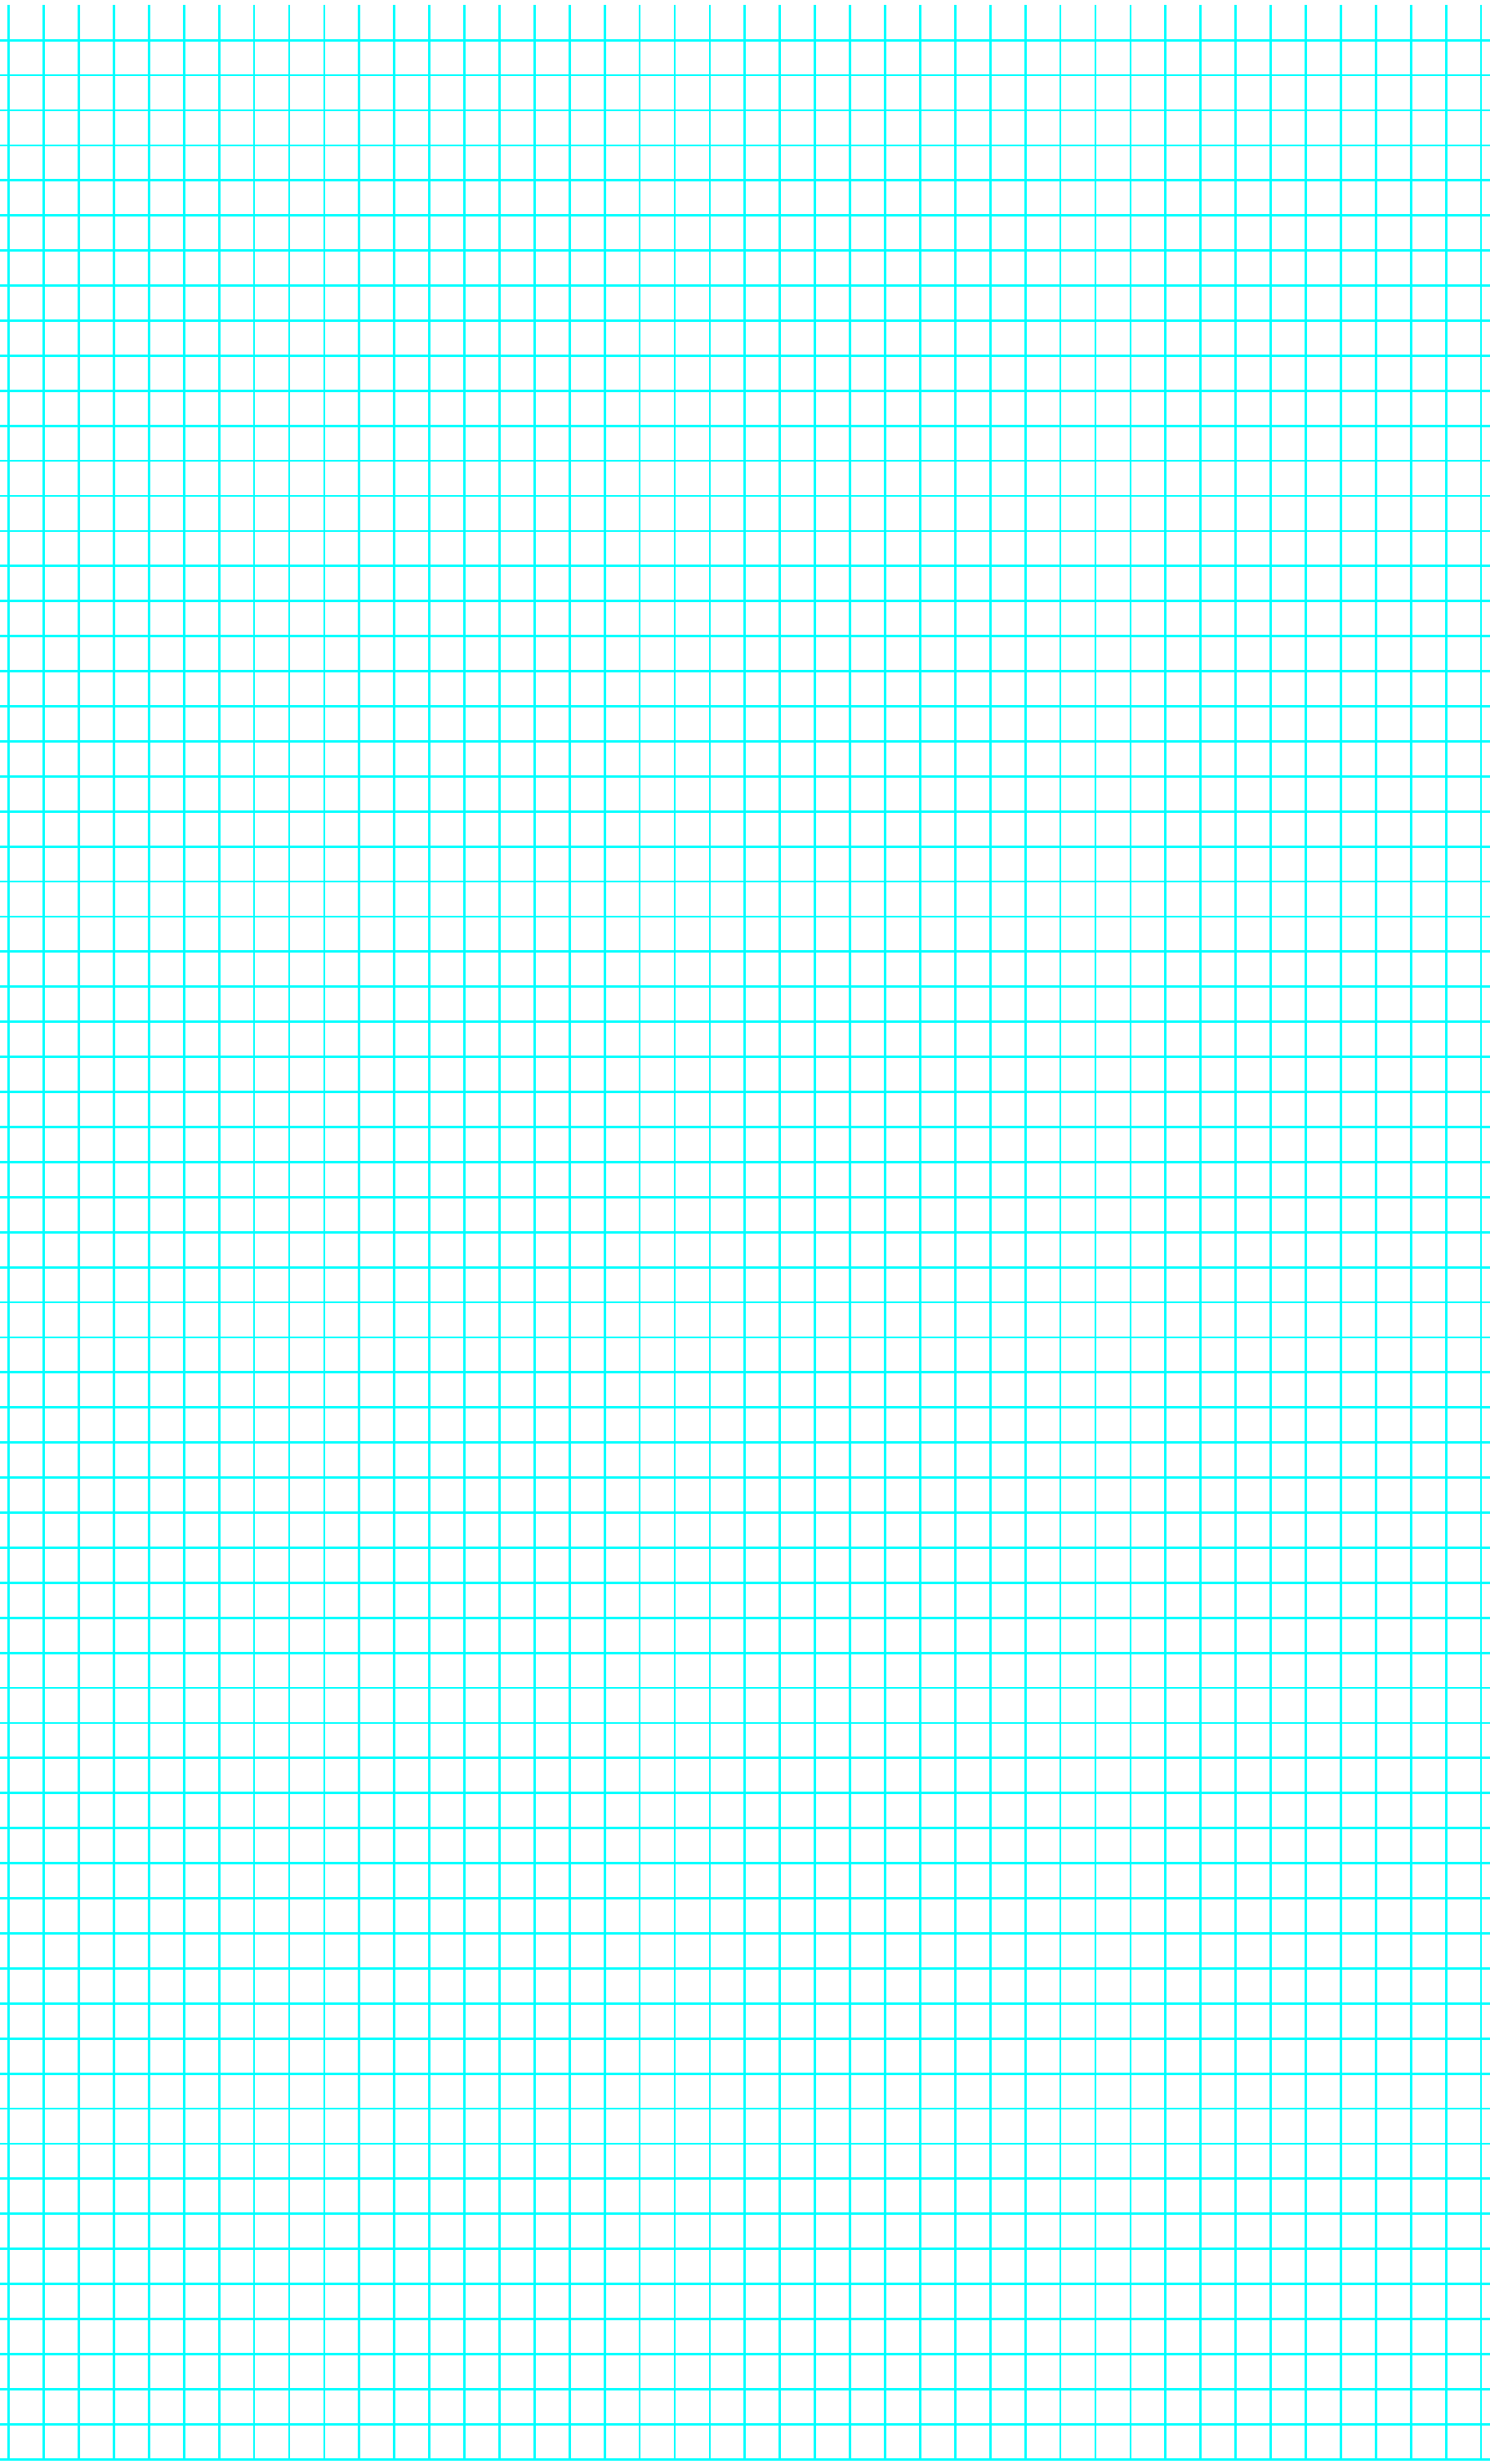 5 lines per inch graph paper on legal